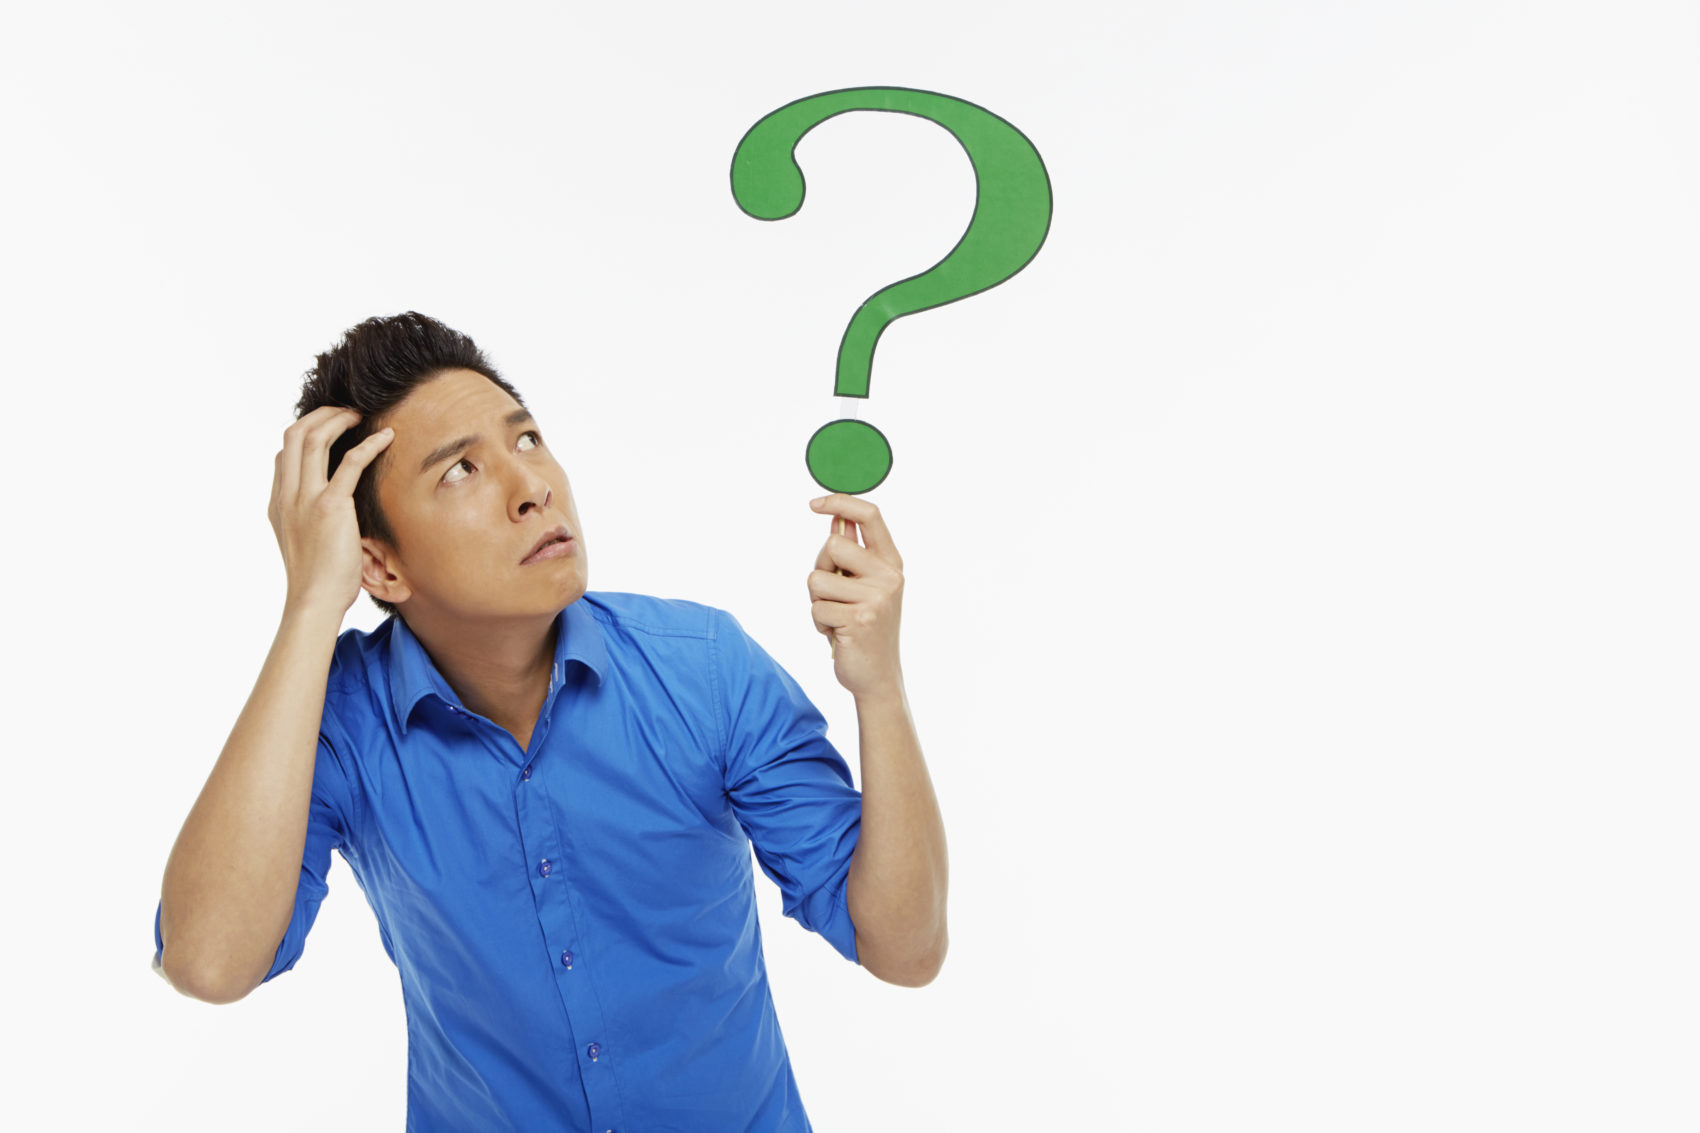 Common Questions Customers Ask About Buying Refurbished Network Equipment